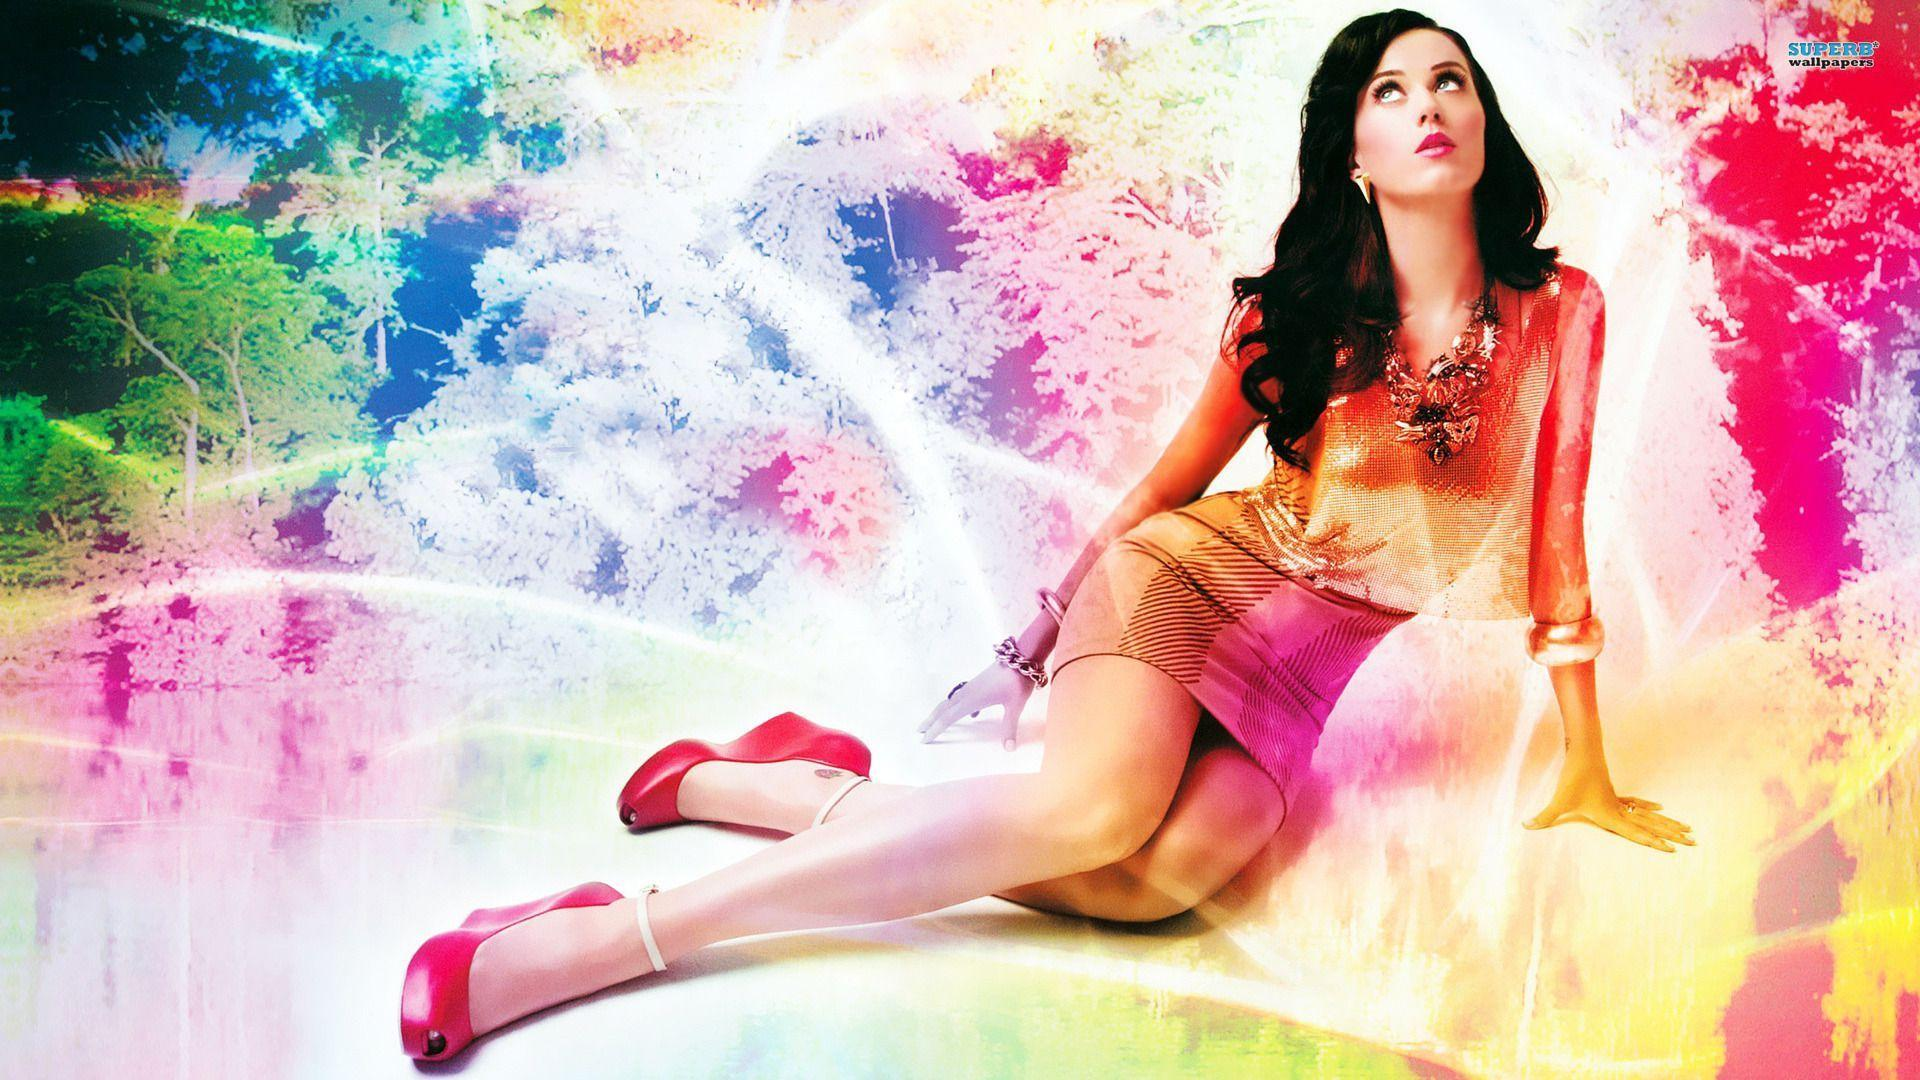 katy perry wallpaper 1080p - photo #6